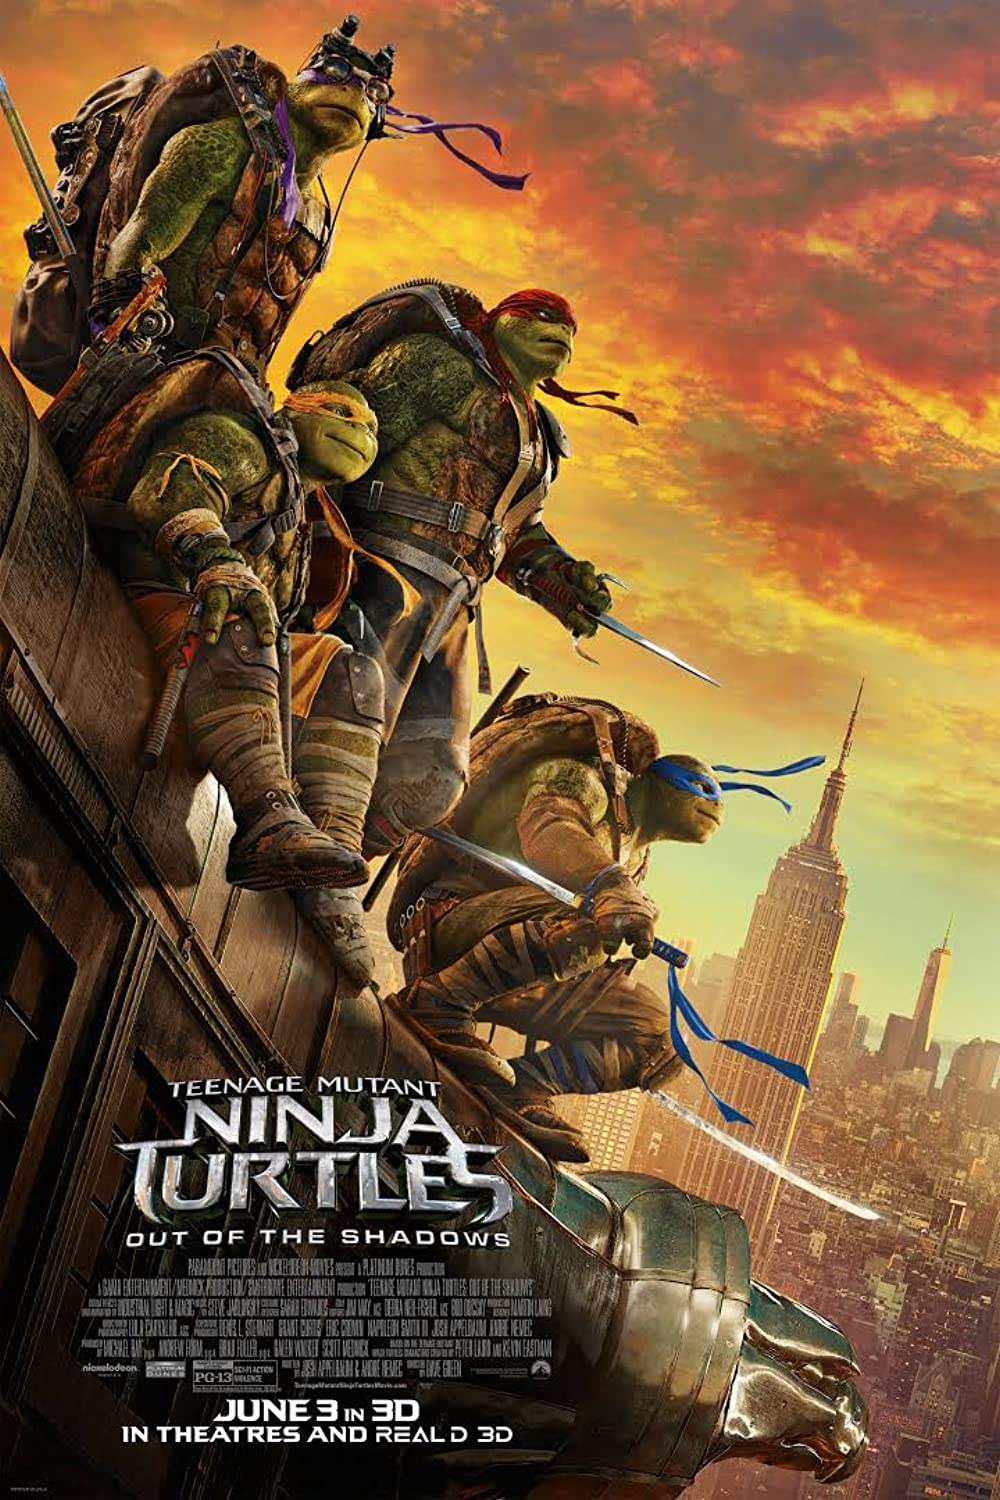 Download Teenage Mutant Ninja Turtles: Out of the Shadows 2016 Hindi Dual Audio 1080p BluRay ESubs 1.6GB